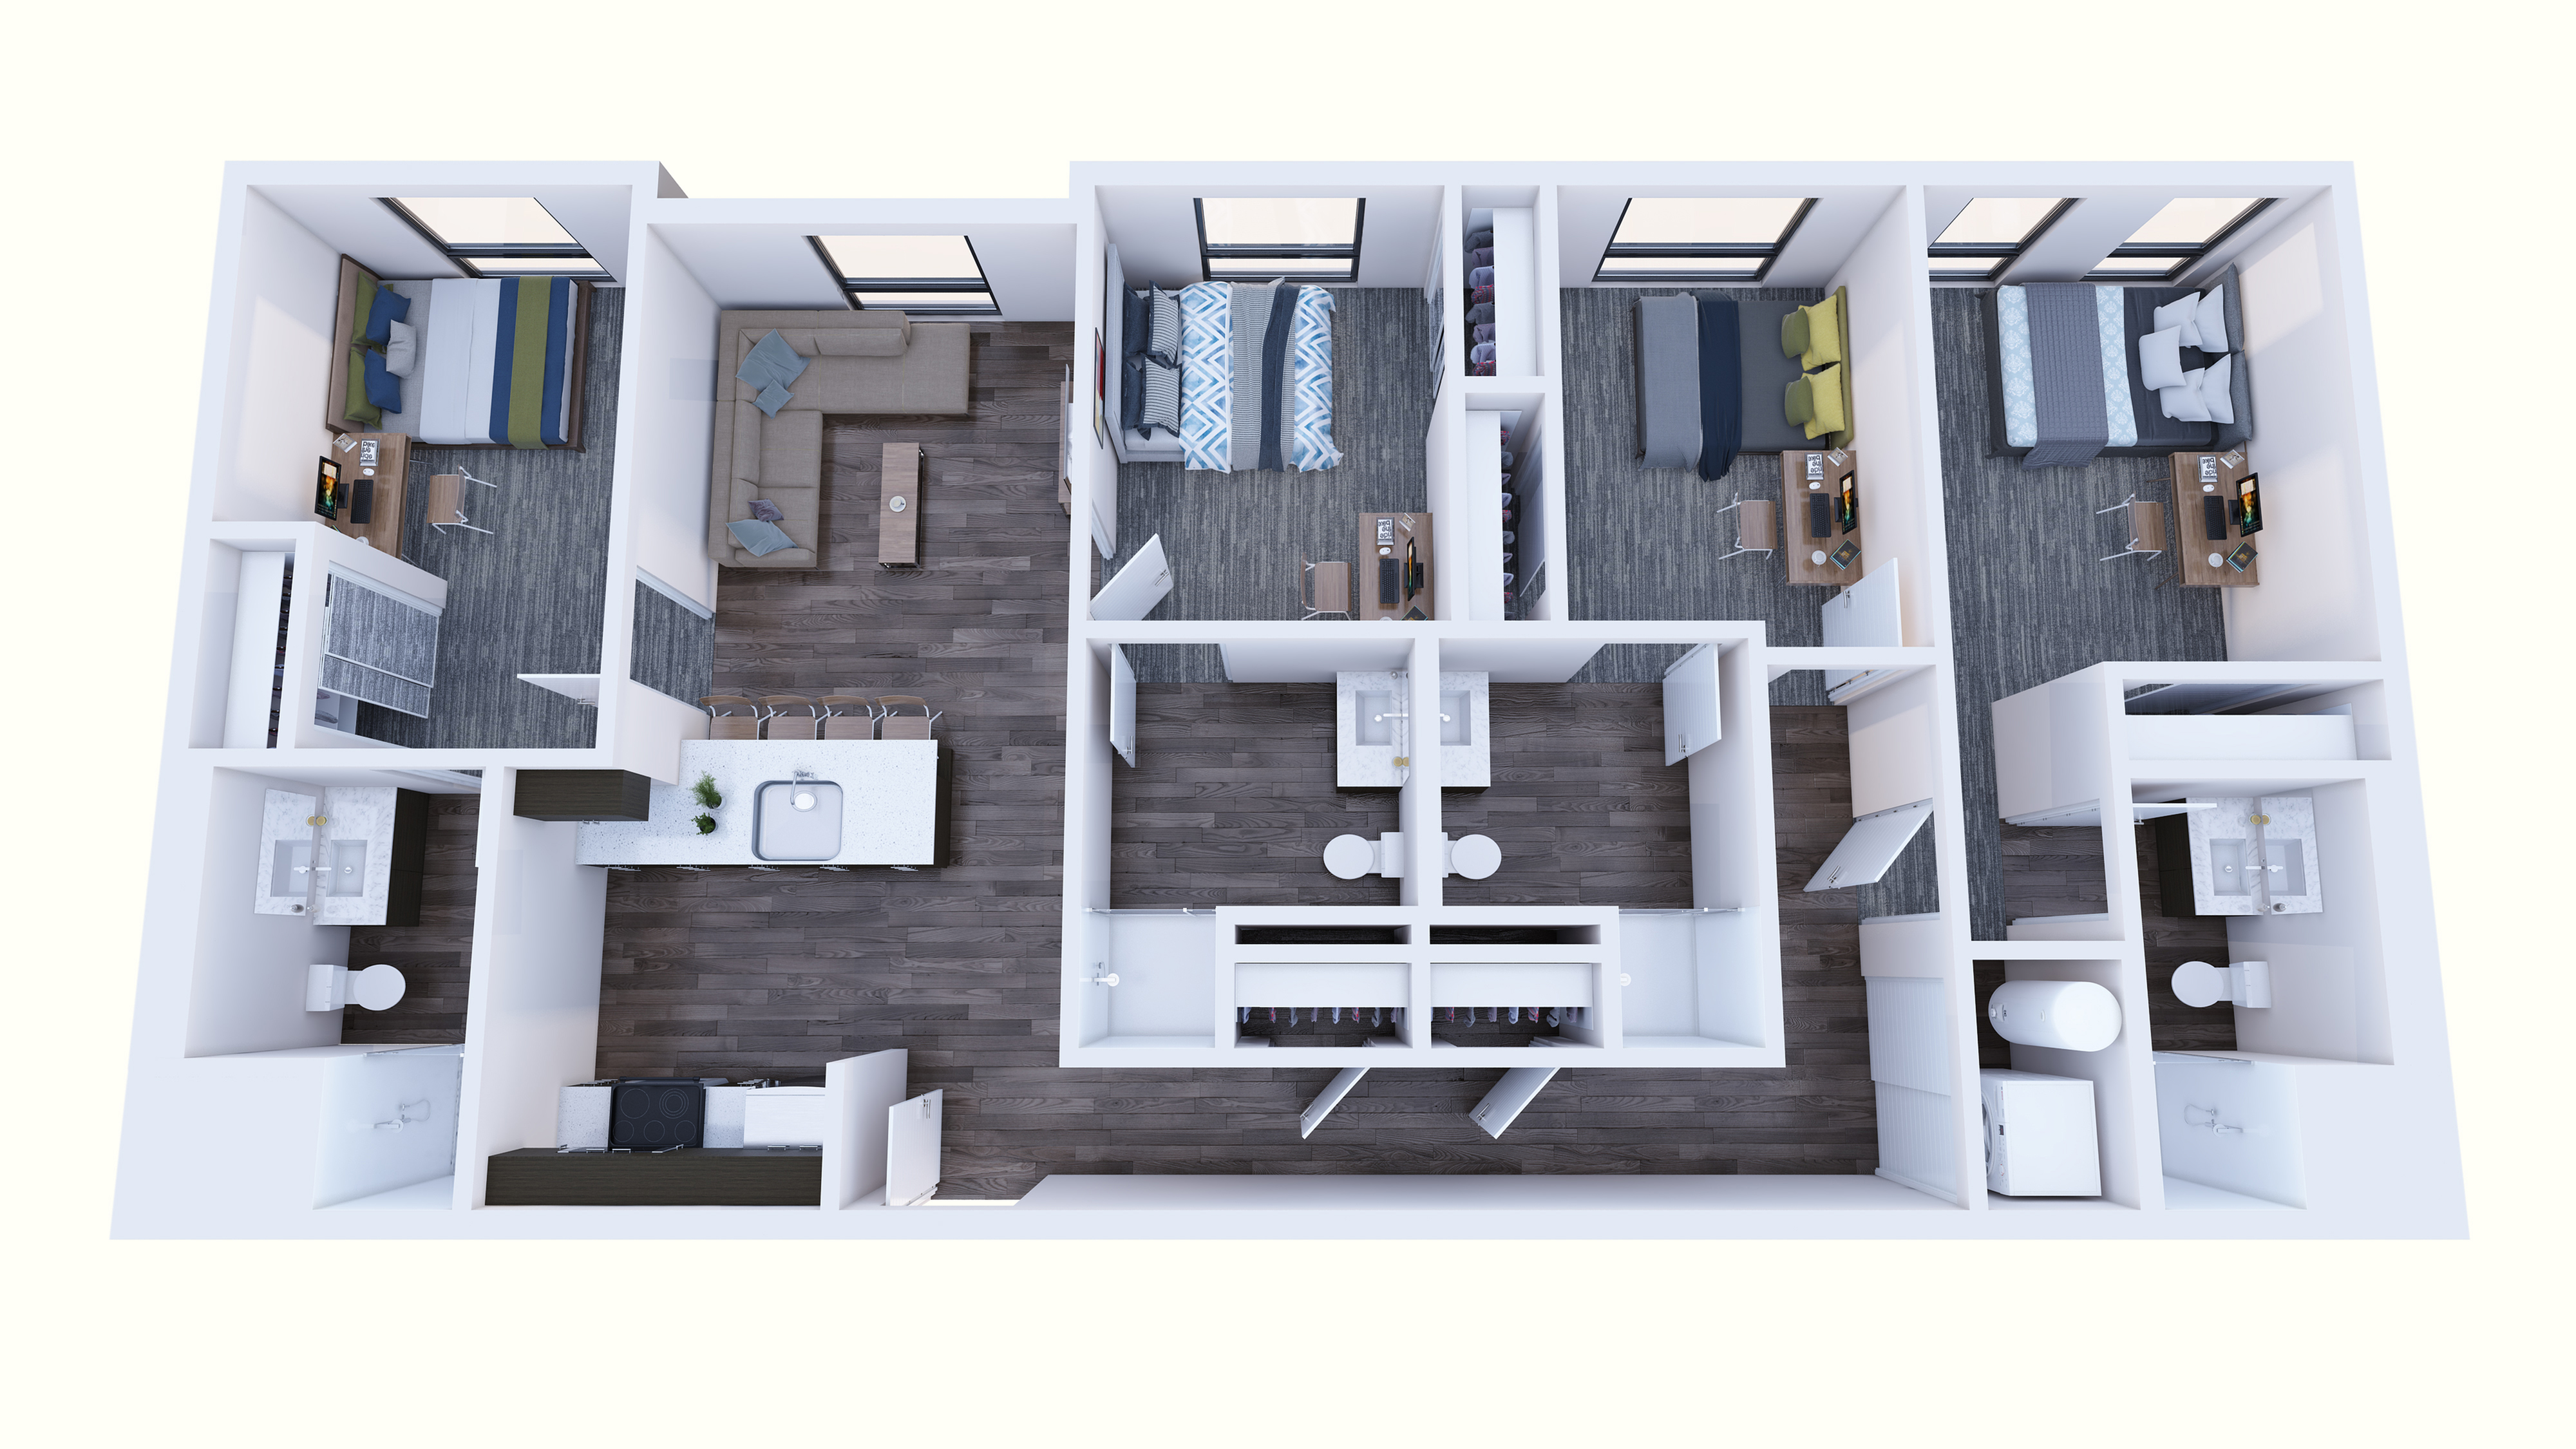 4x4 Balcony - Fewer than 5 spaces